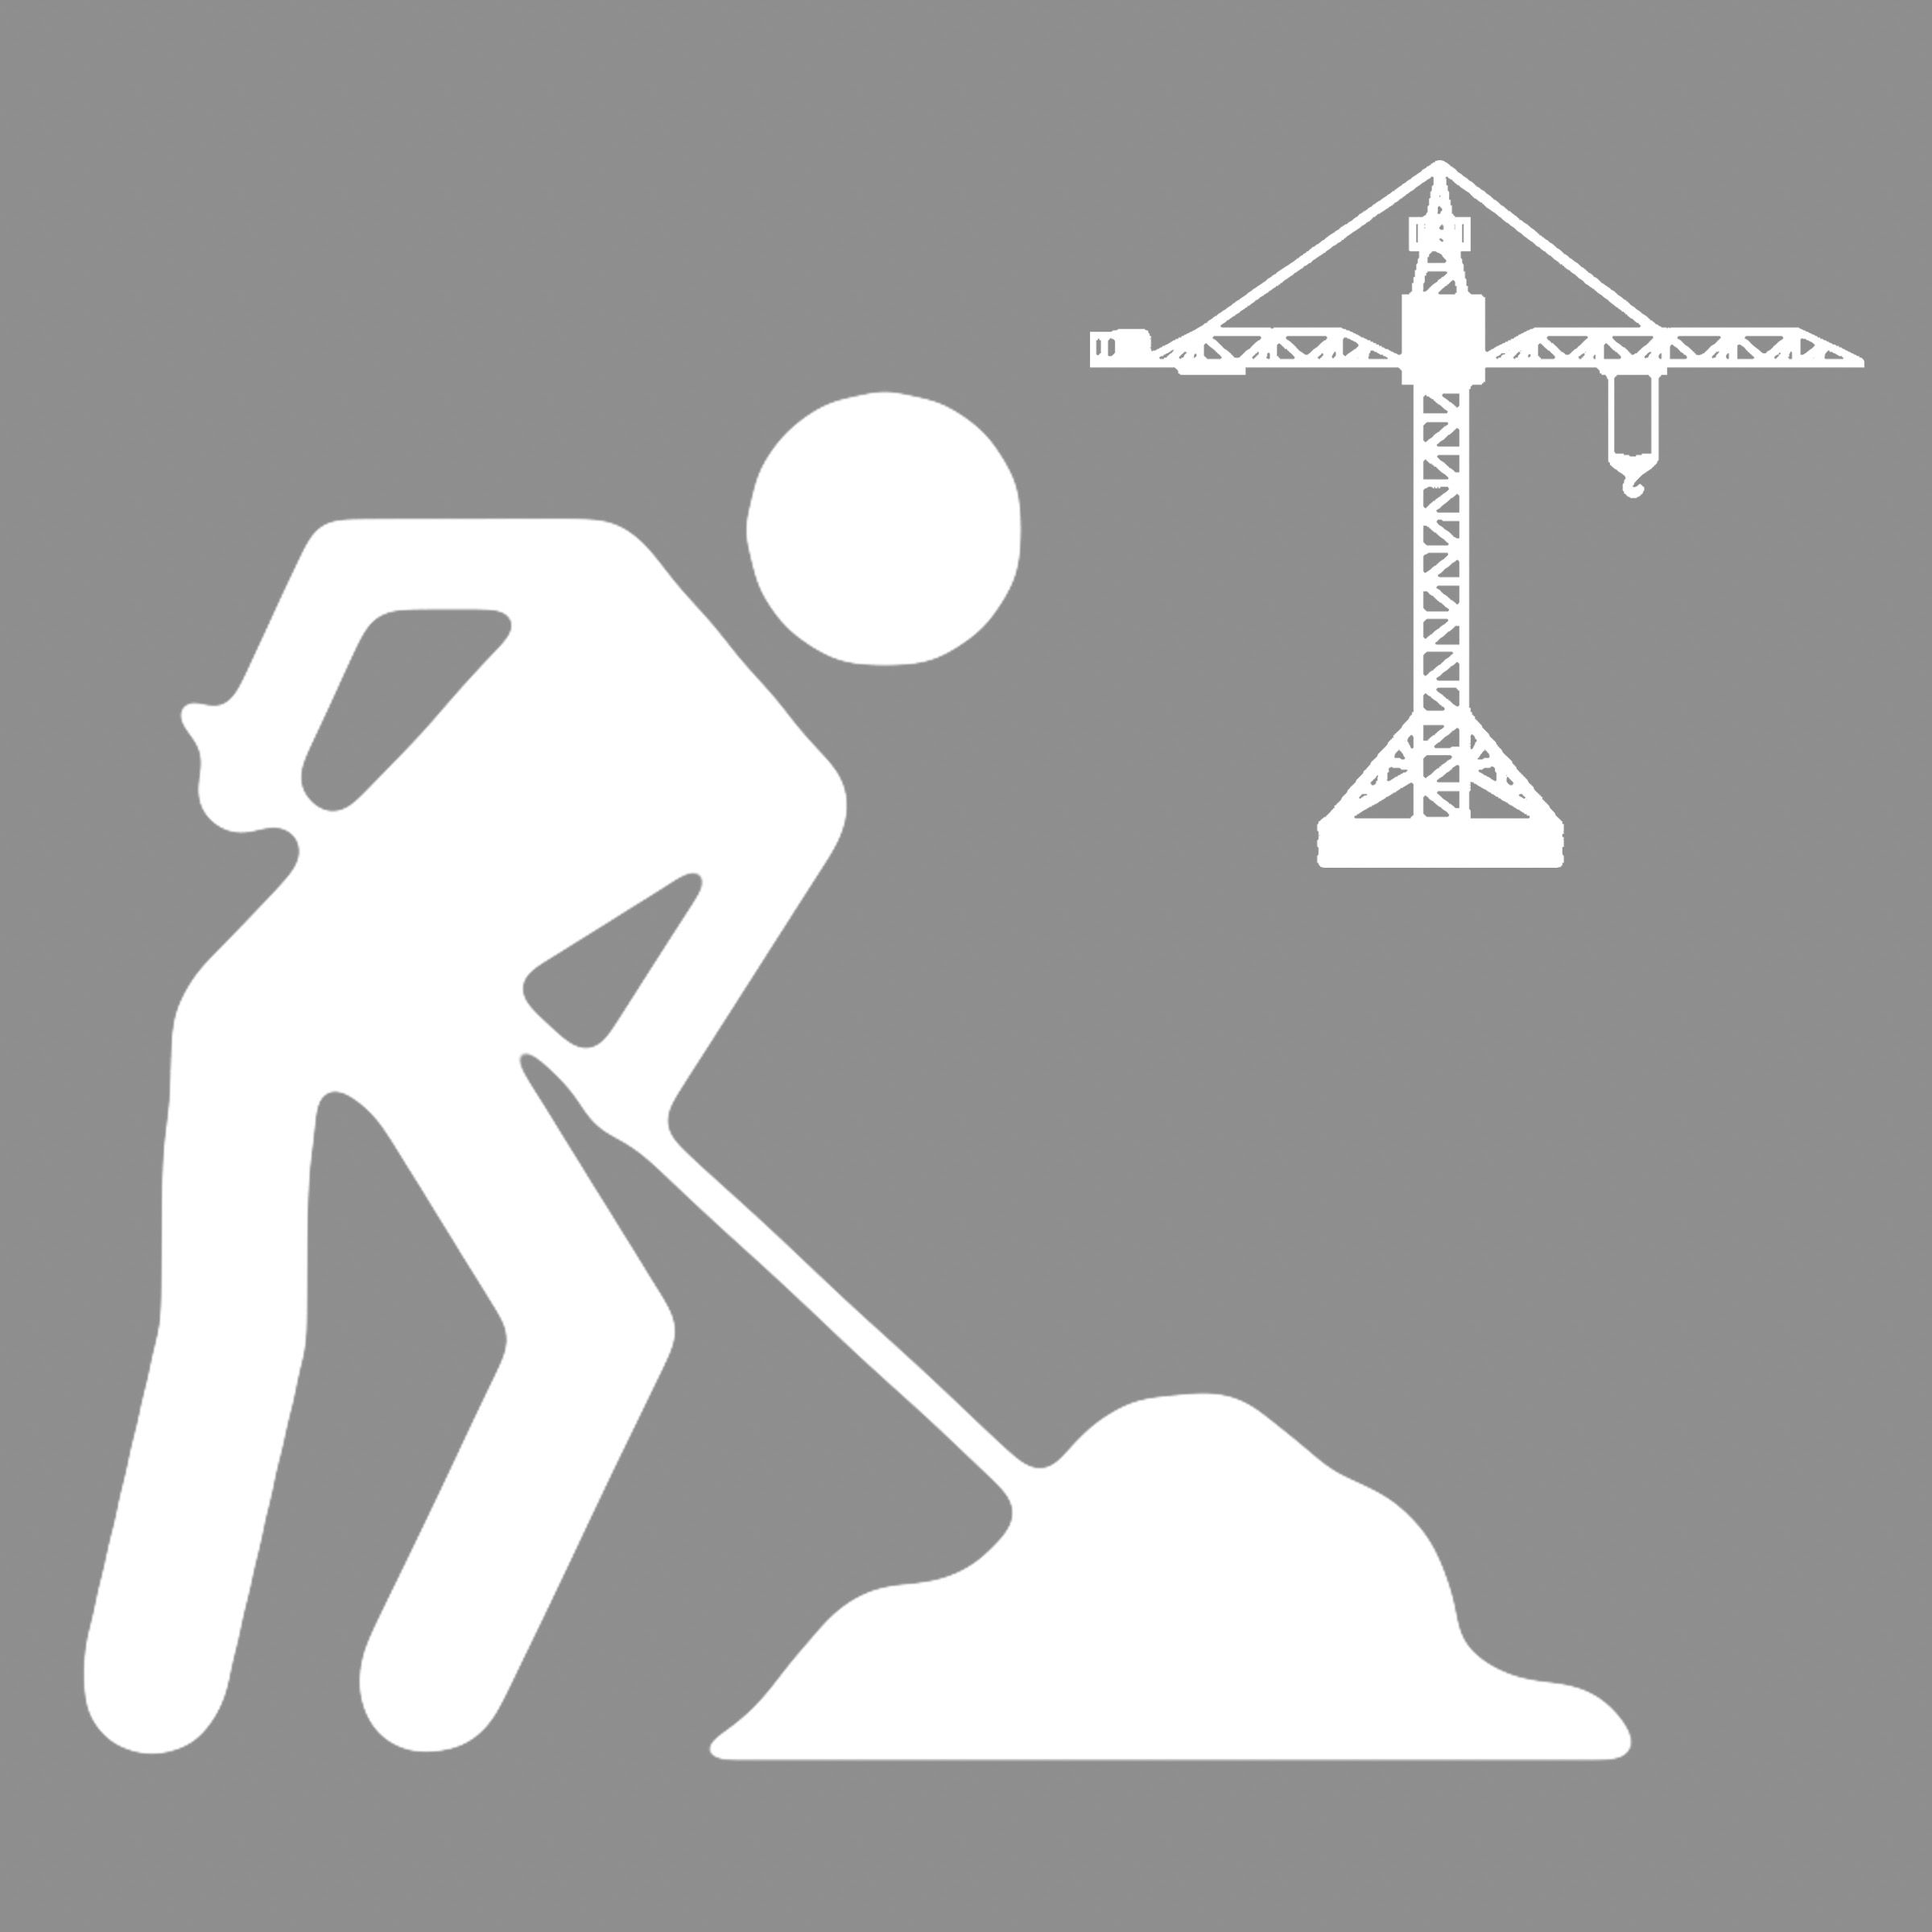 Construction sites are our biggest renters mainly used to